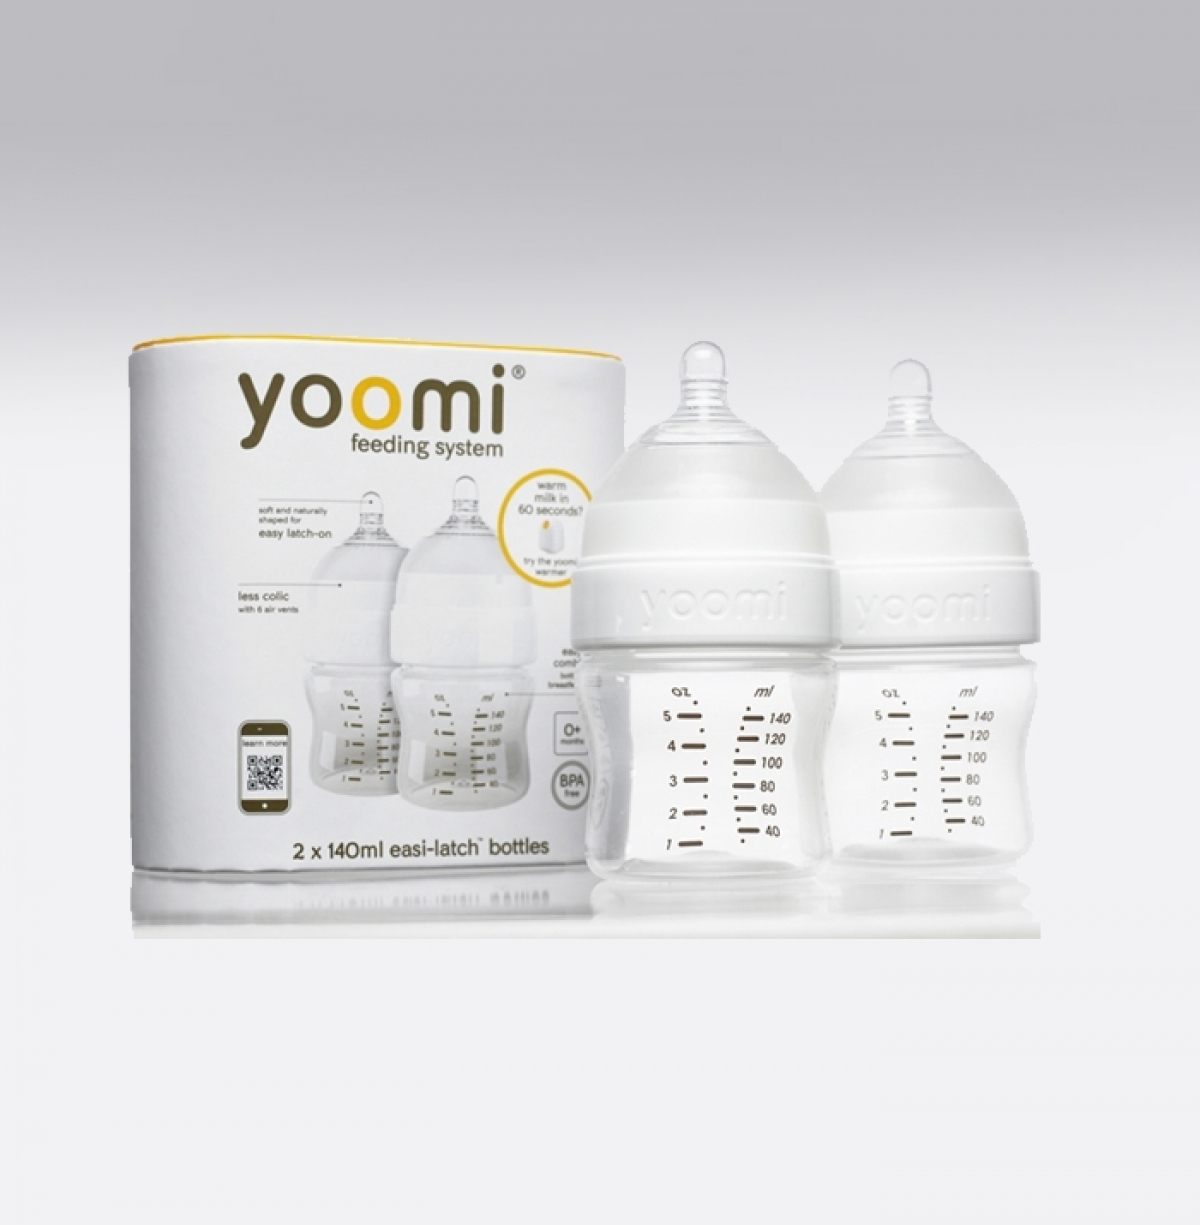 yoomi warmth within - 5oz bottle (twin pack)